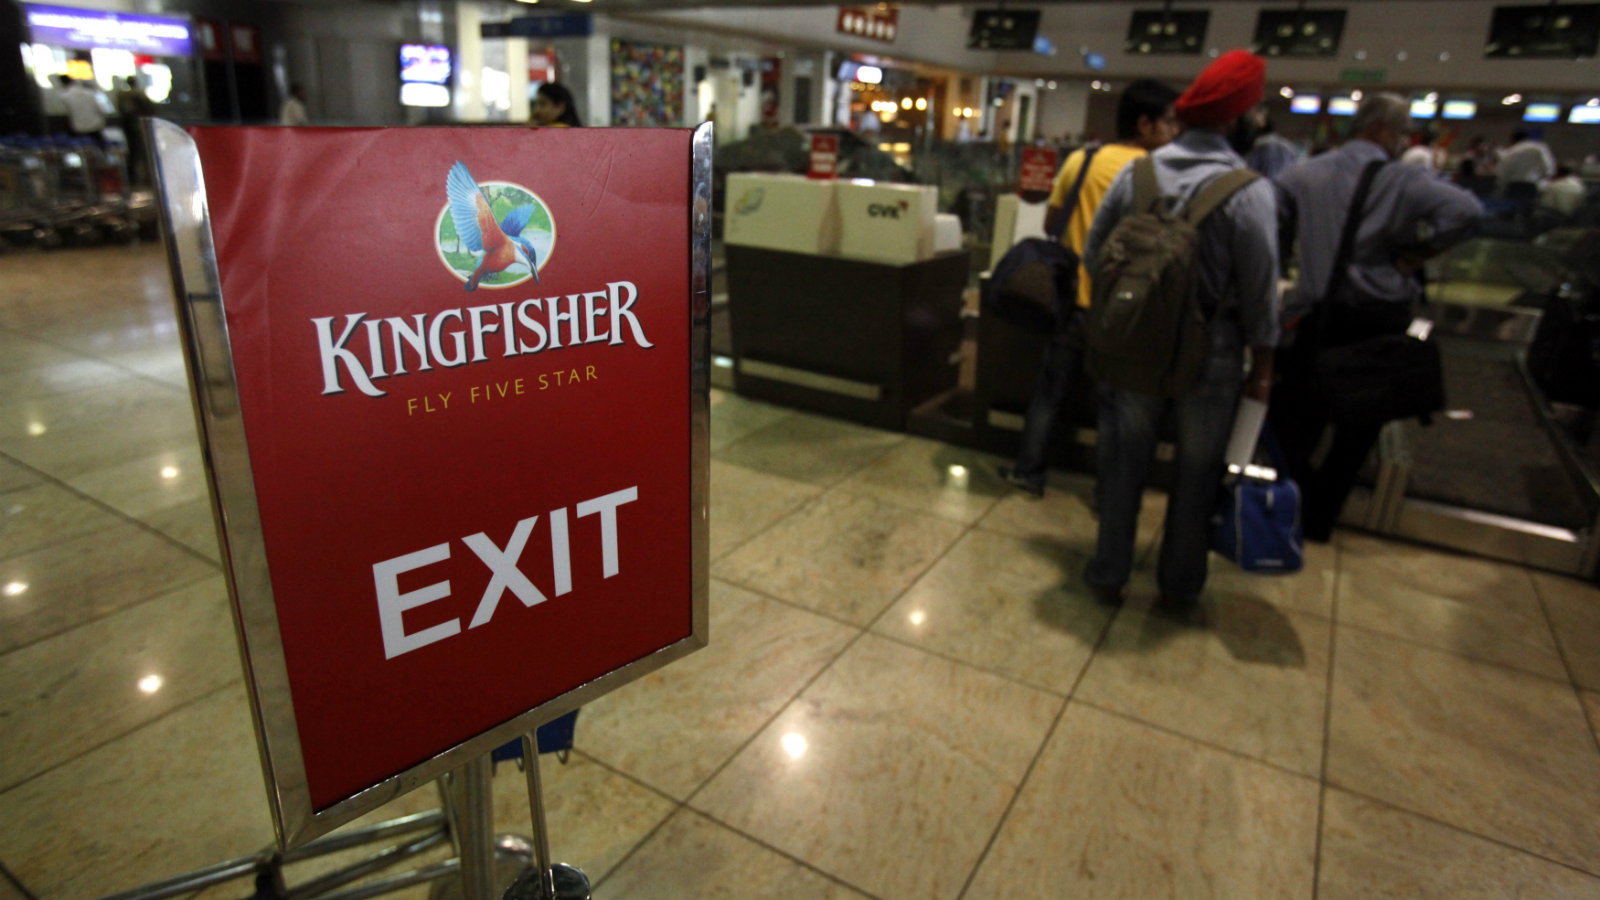 Kingfisher Airlines customers wait in a check-in queue at Mumbai's domestic airport March 20, 2012. India's aviation minister warned Kingfisher Airlines that its licence may be cancelled if safety norms and financial viability conditions are not met, in the latest blow to the beleaguered carrier.